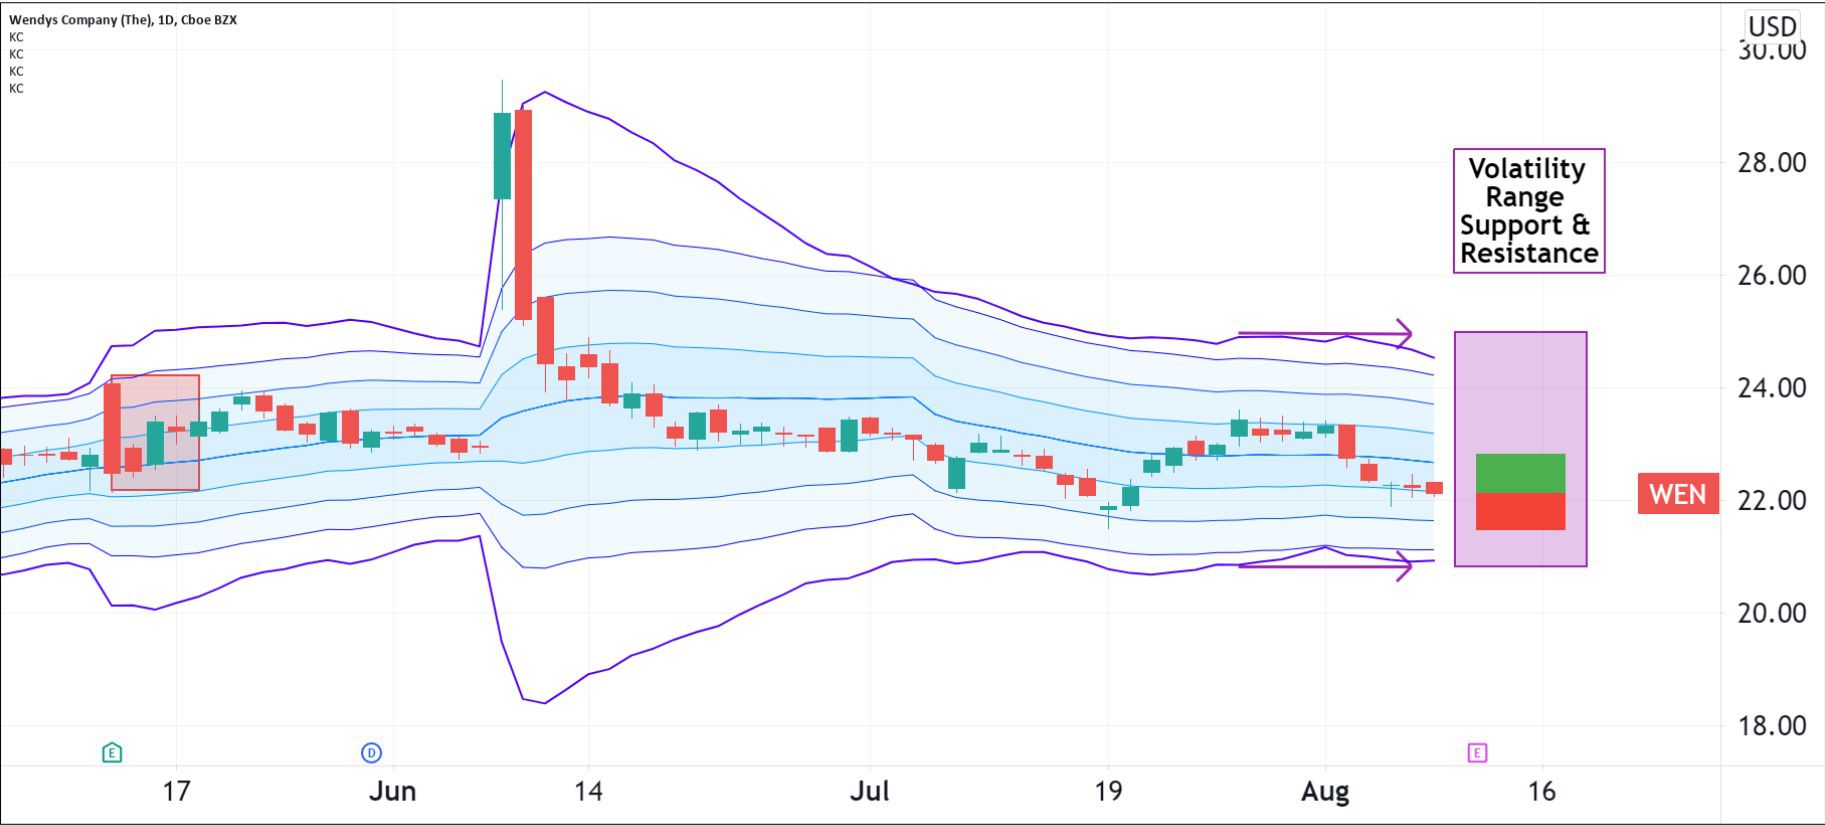 Volatility pattern for The Wendy's Company (WEN)